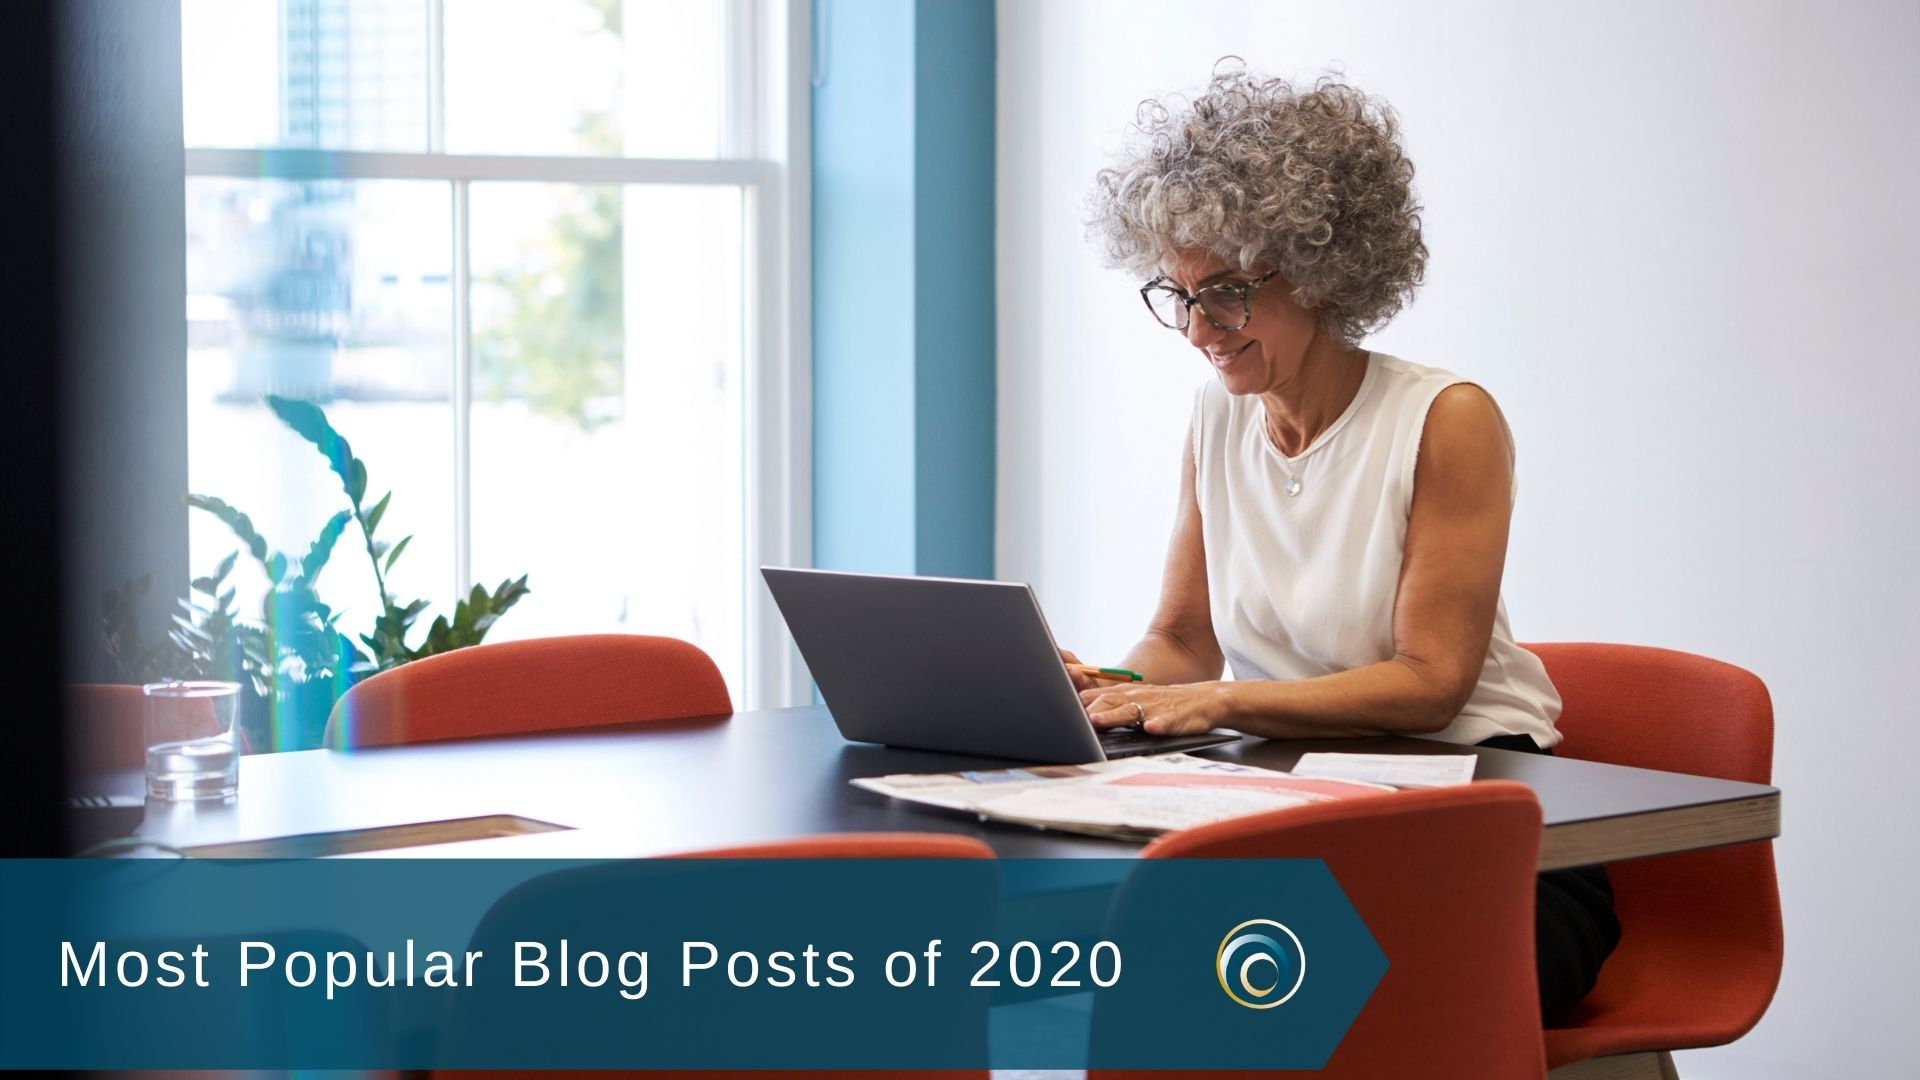 Most Popular Blog Posts of 2020 blog image